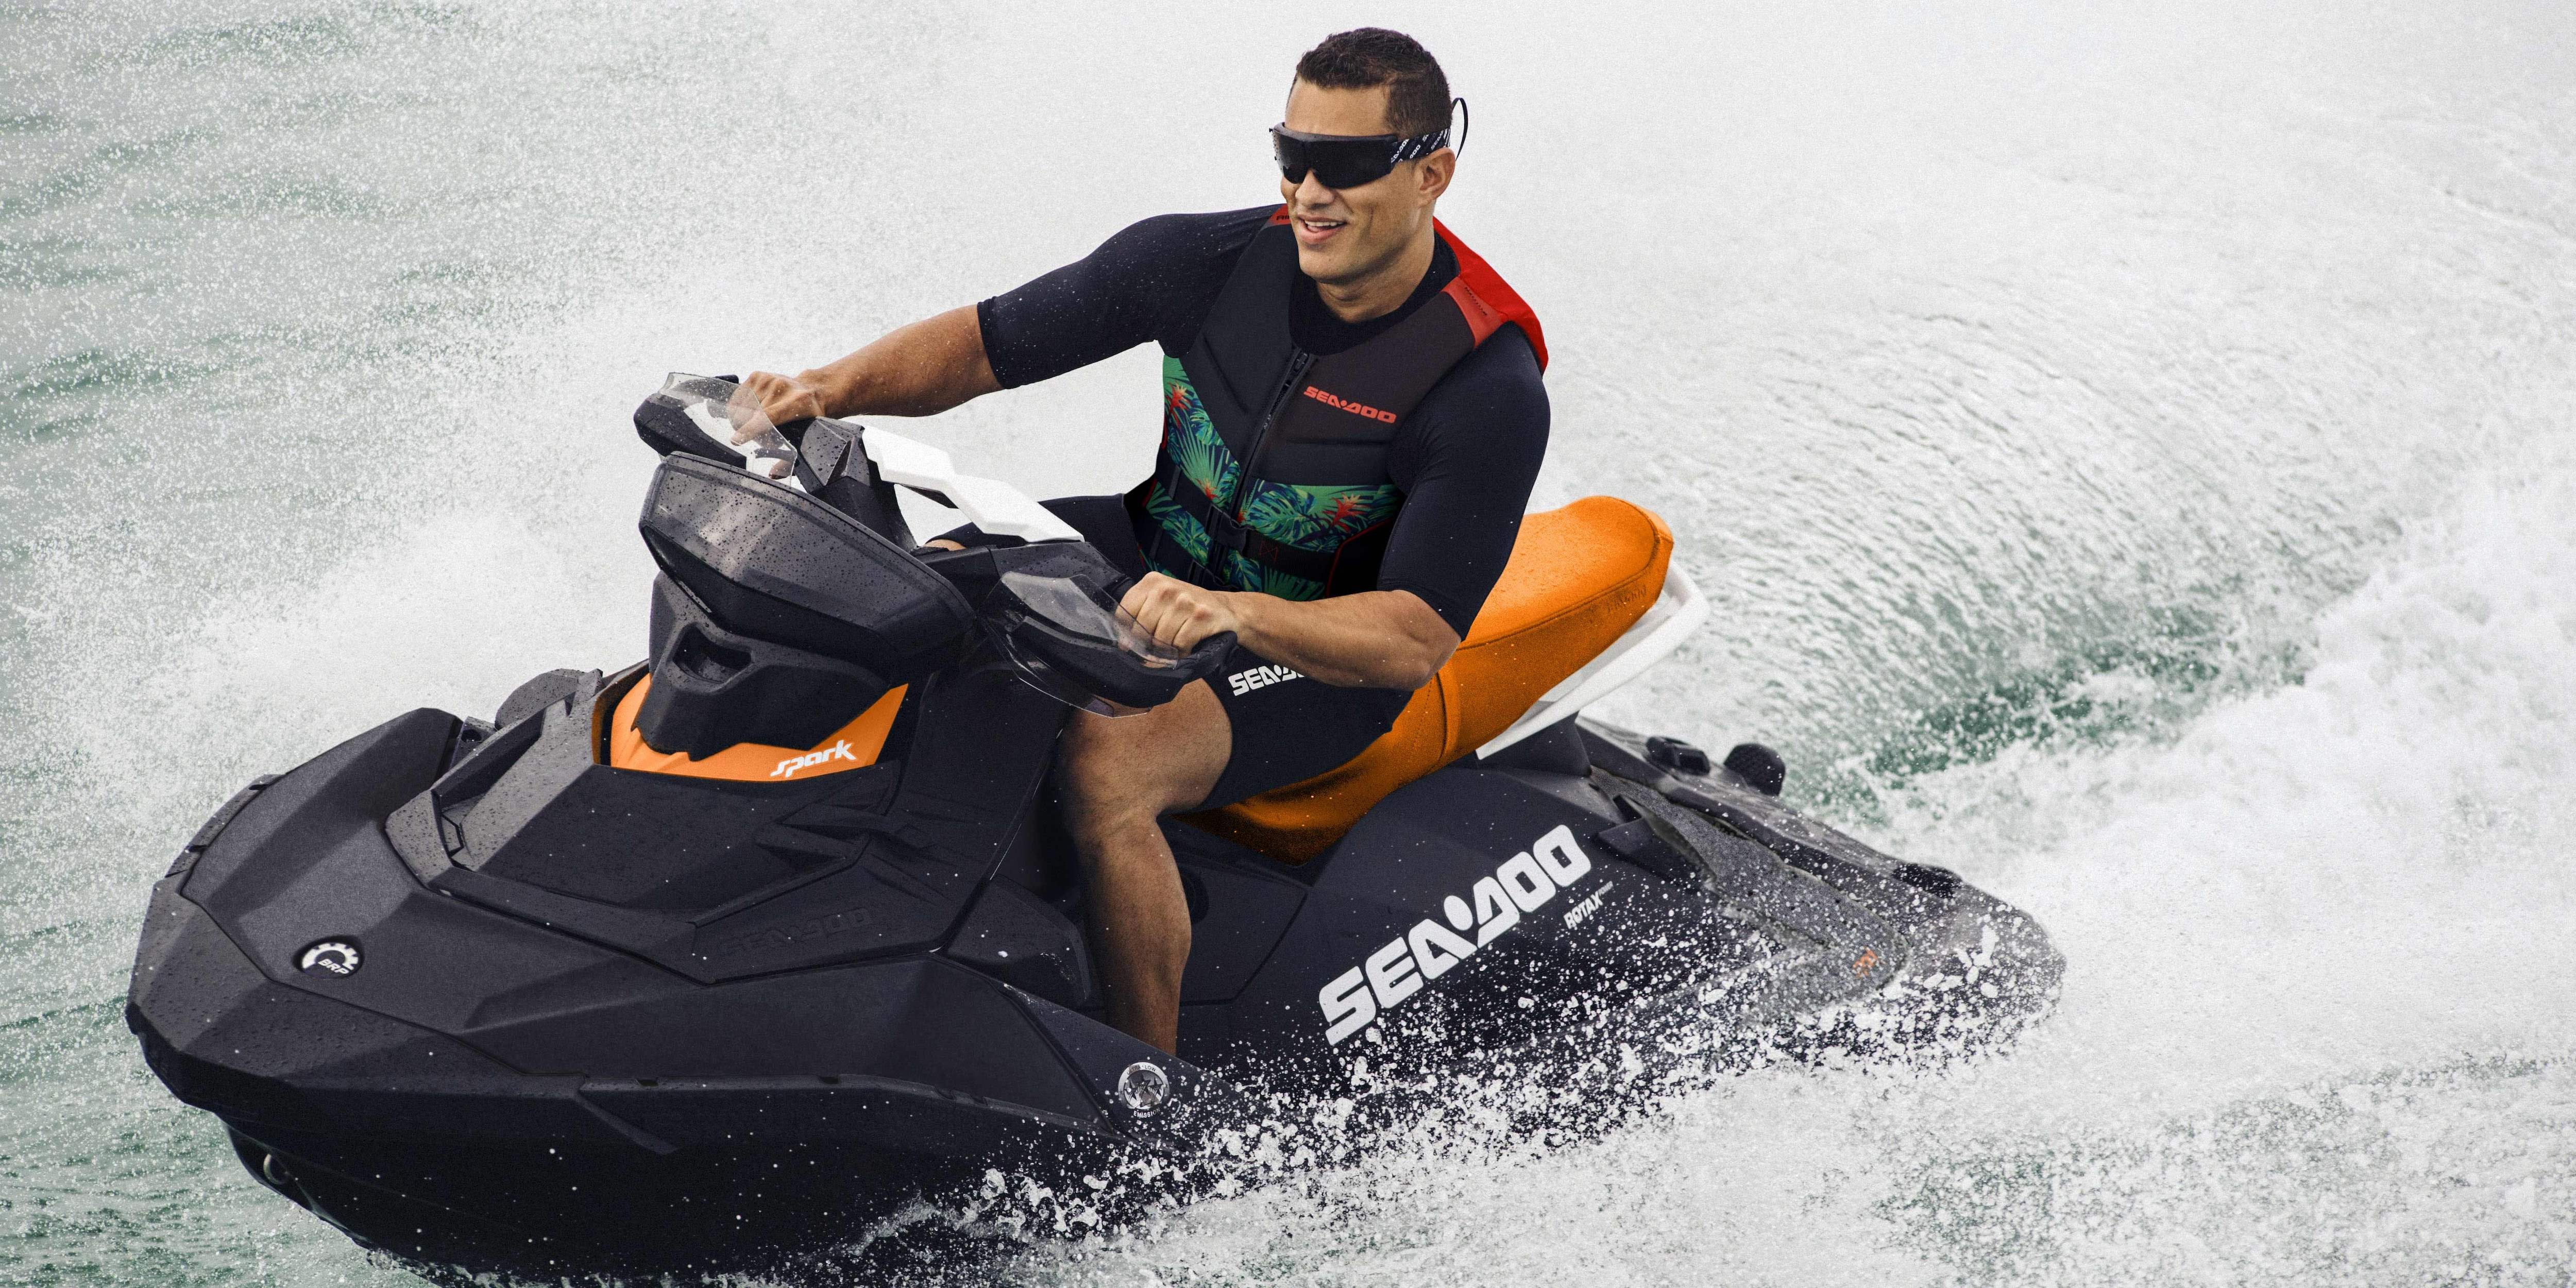 Man riding a Sea-Doo Spark with IBR feature